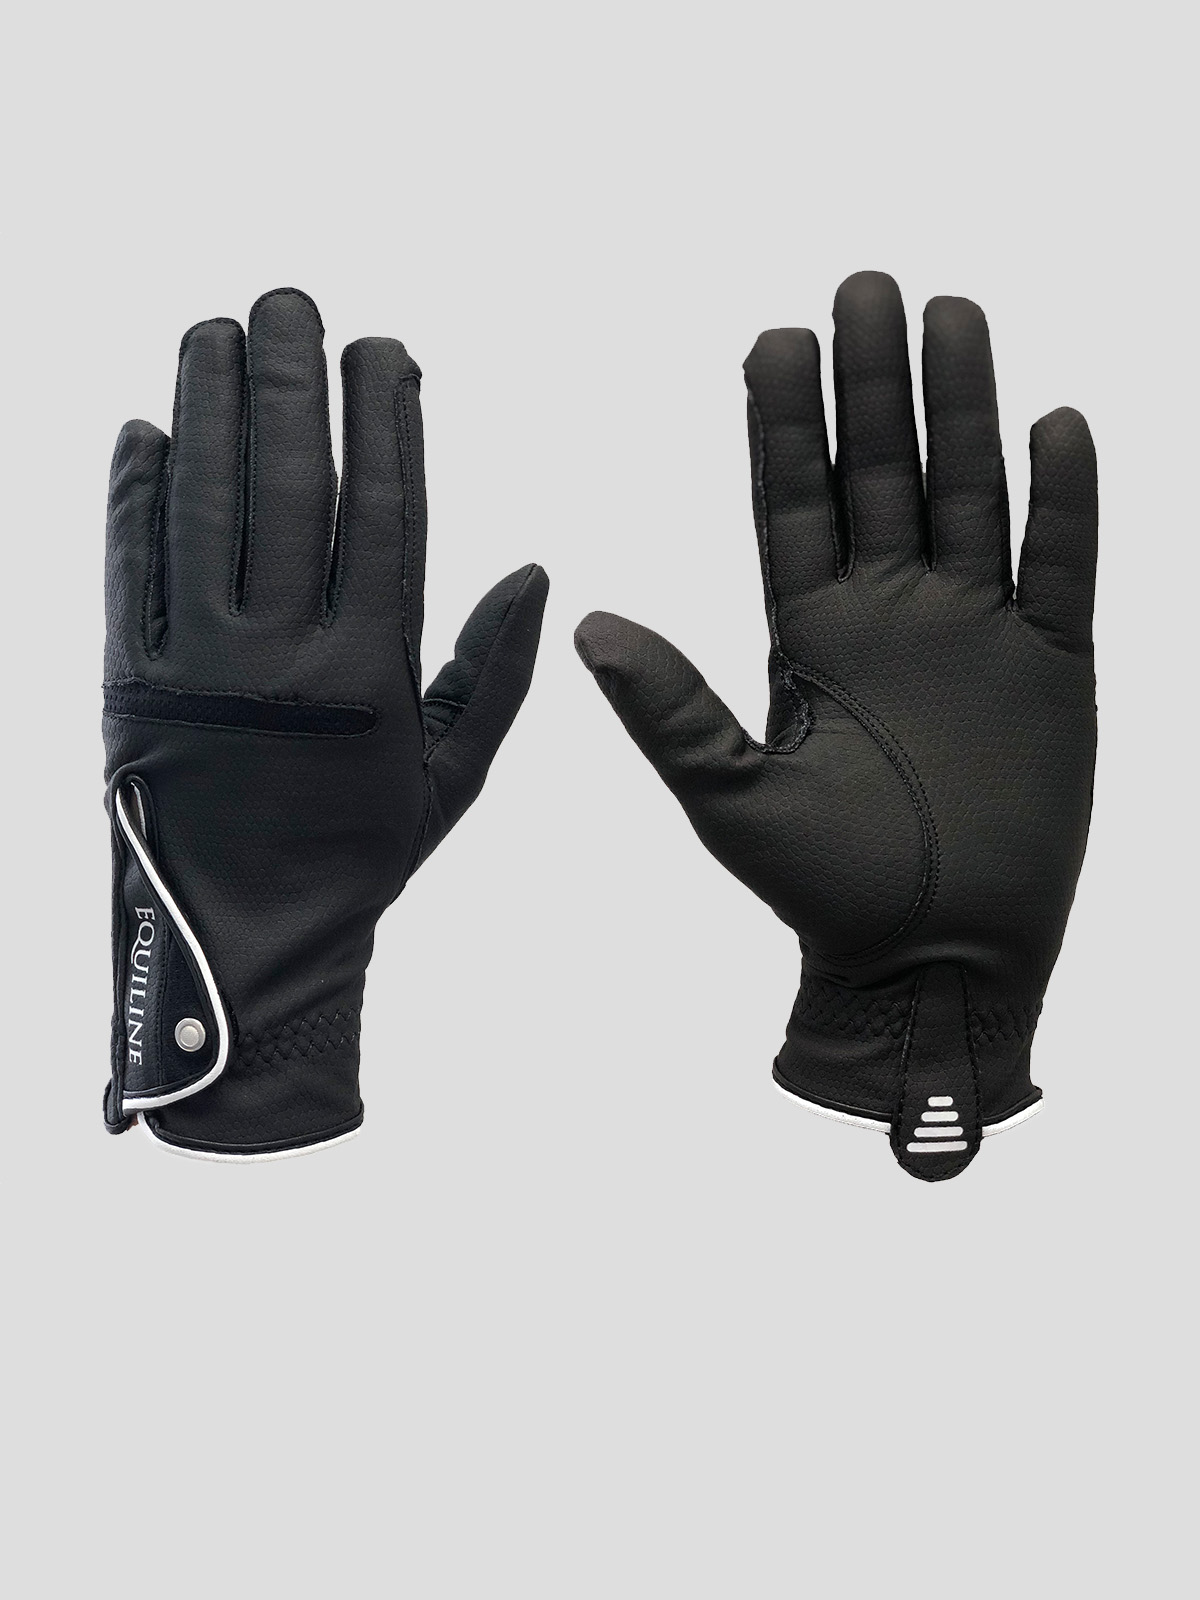 Equiline X-Glove grip riding gloves